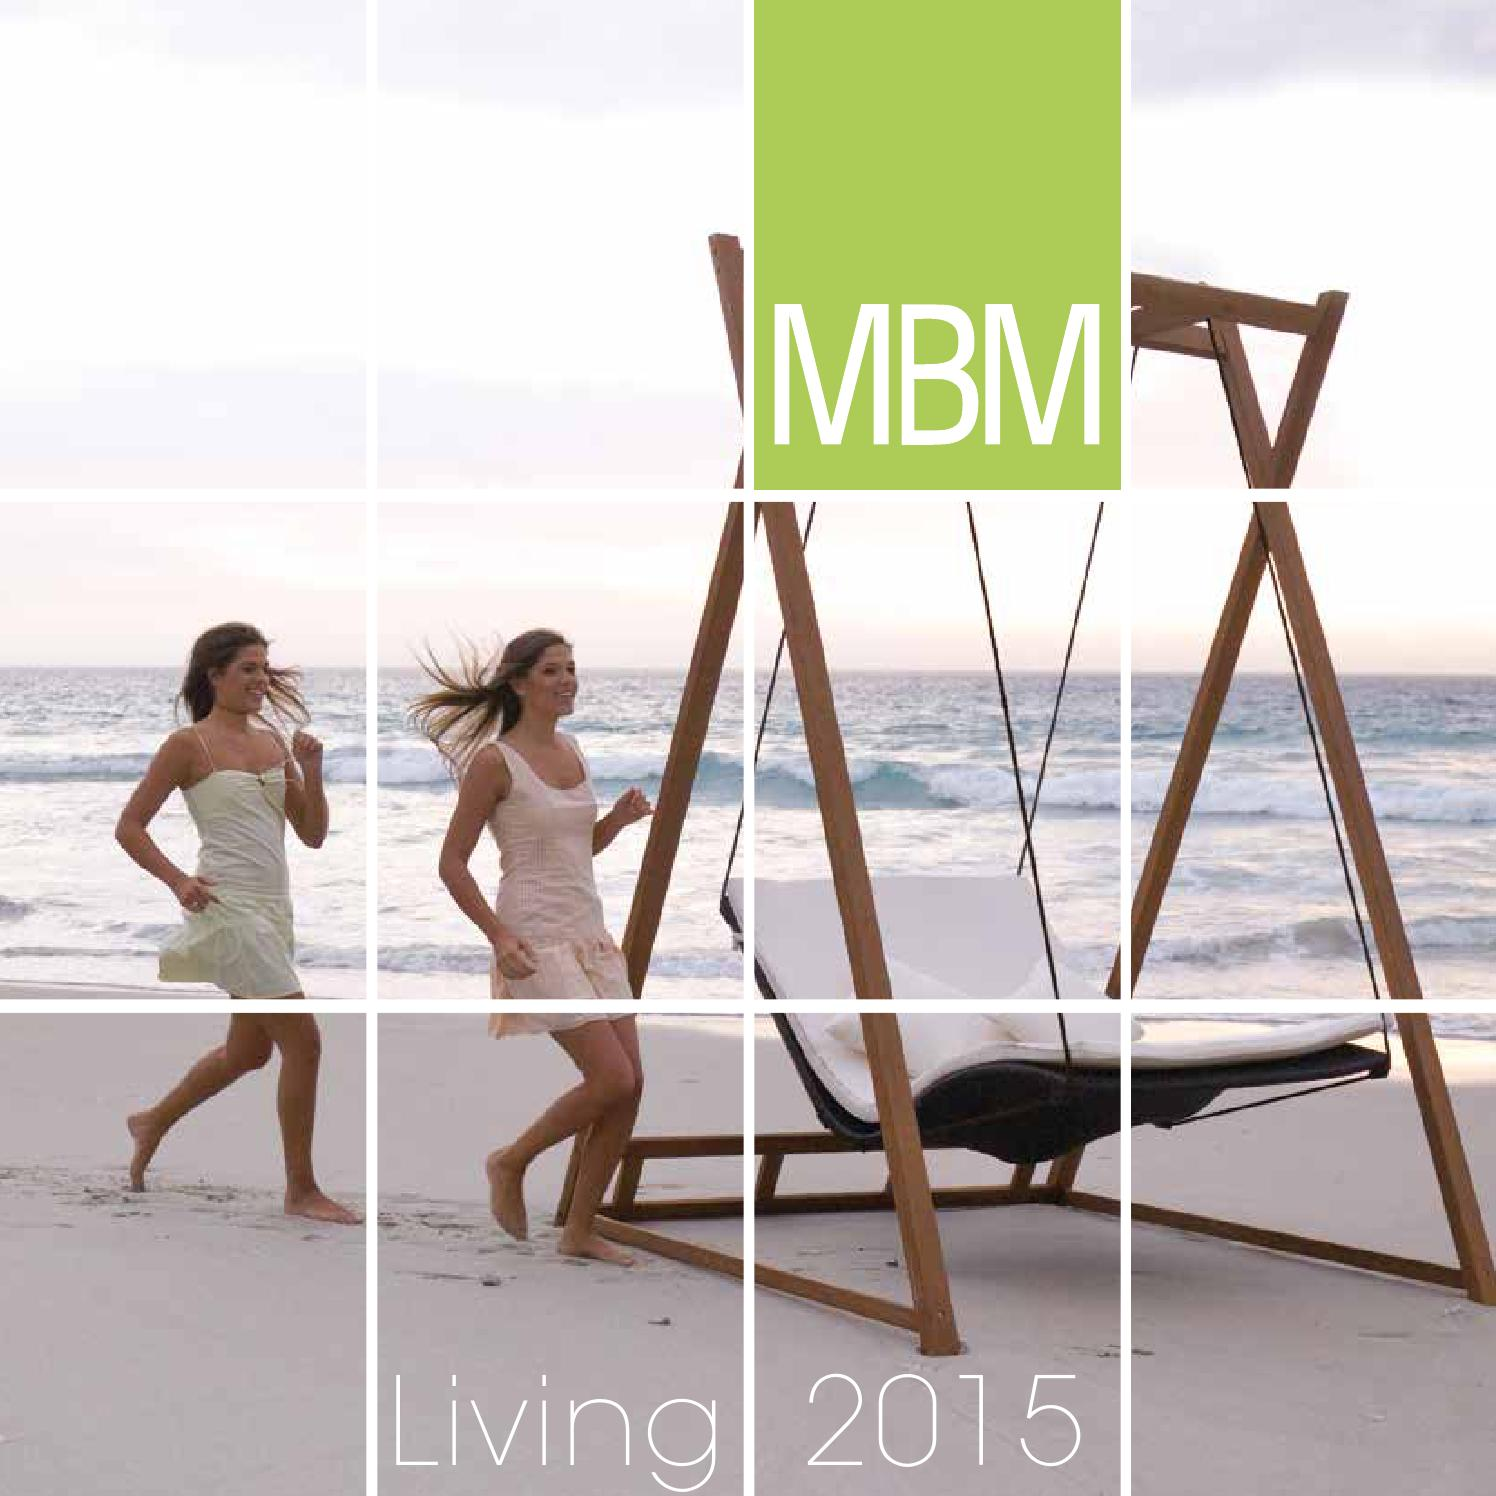 Heaven Swing Doppelliege Mbm Living 2015 By Terrasamebel Issuu